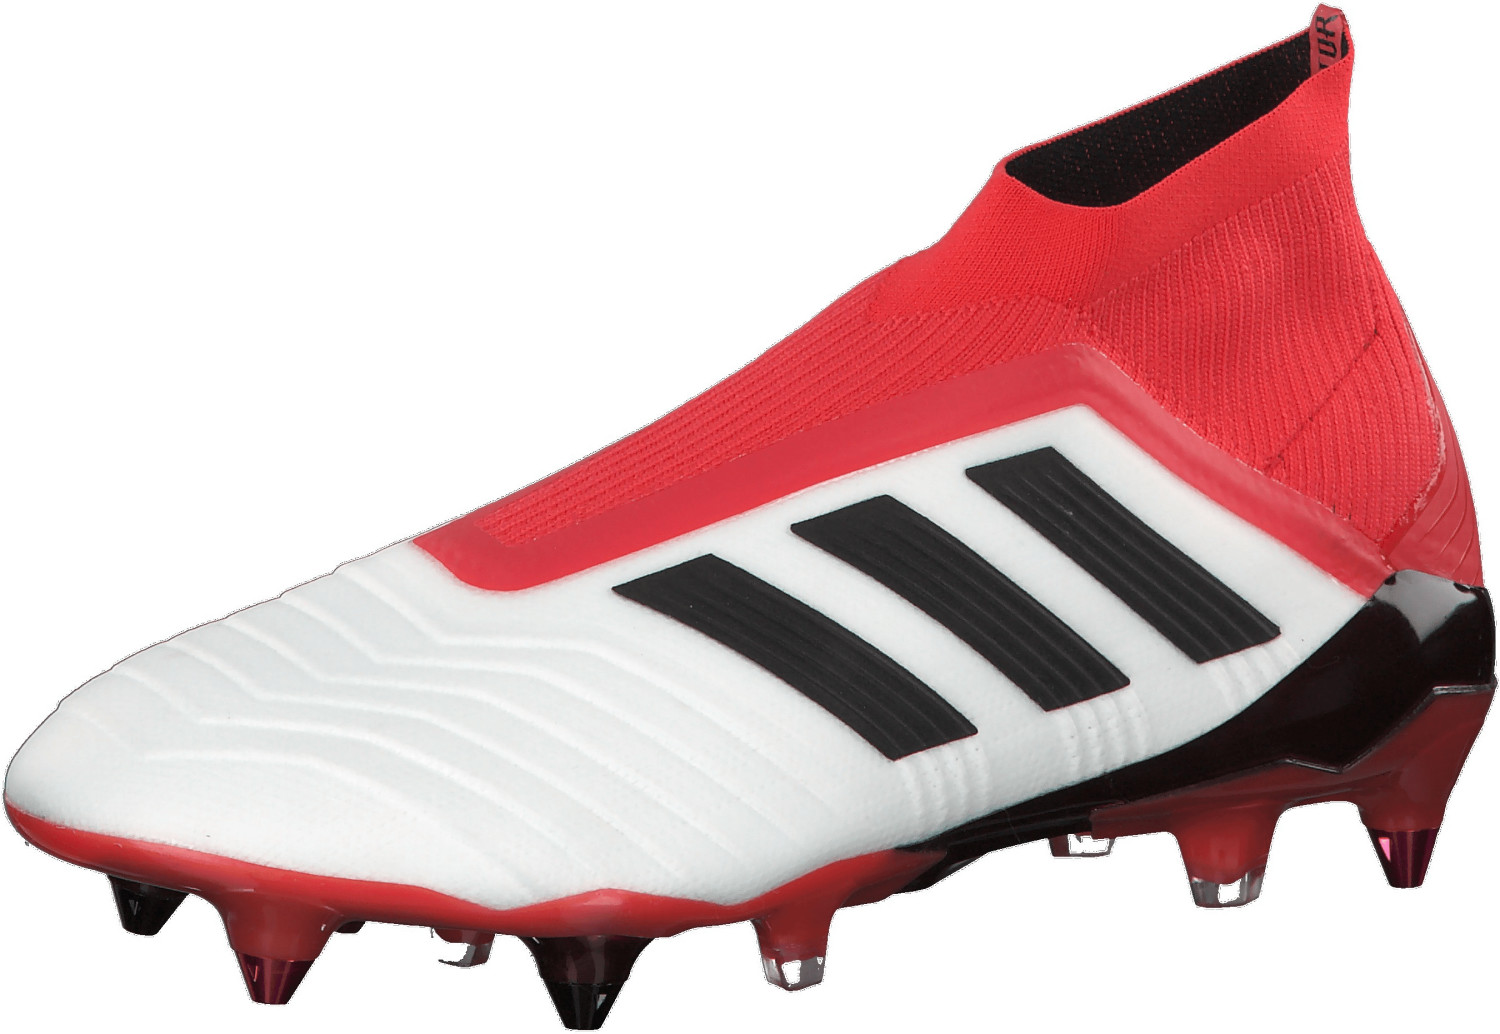 Adidas Predator 18+ SG footwear white/core black/real coral